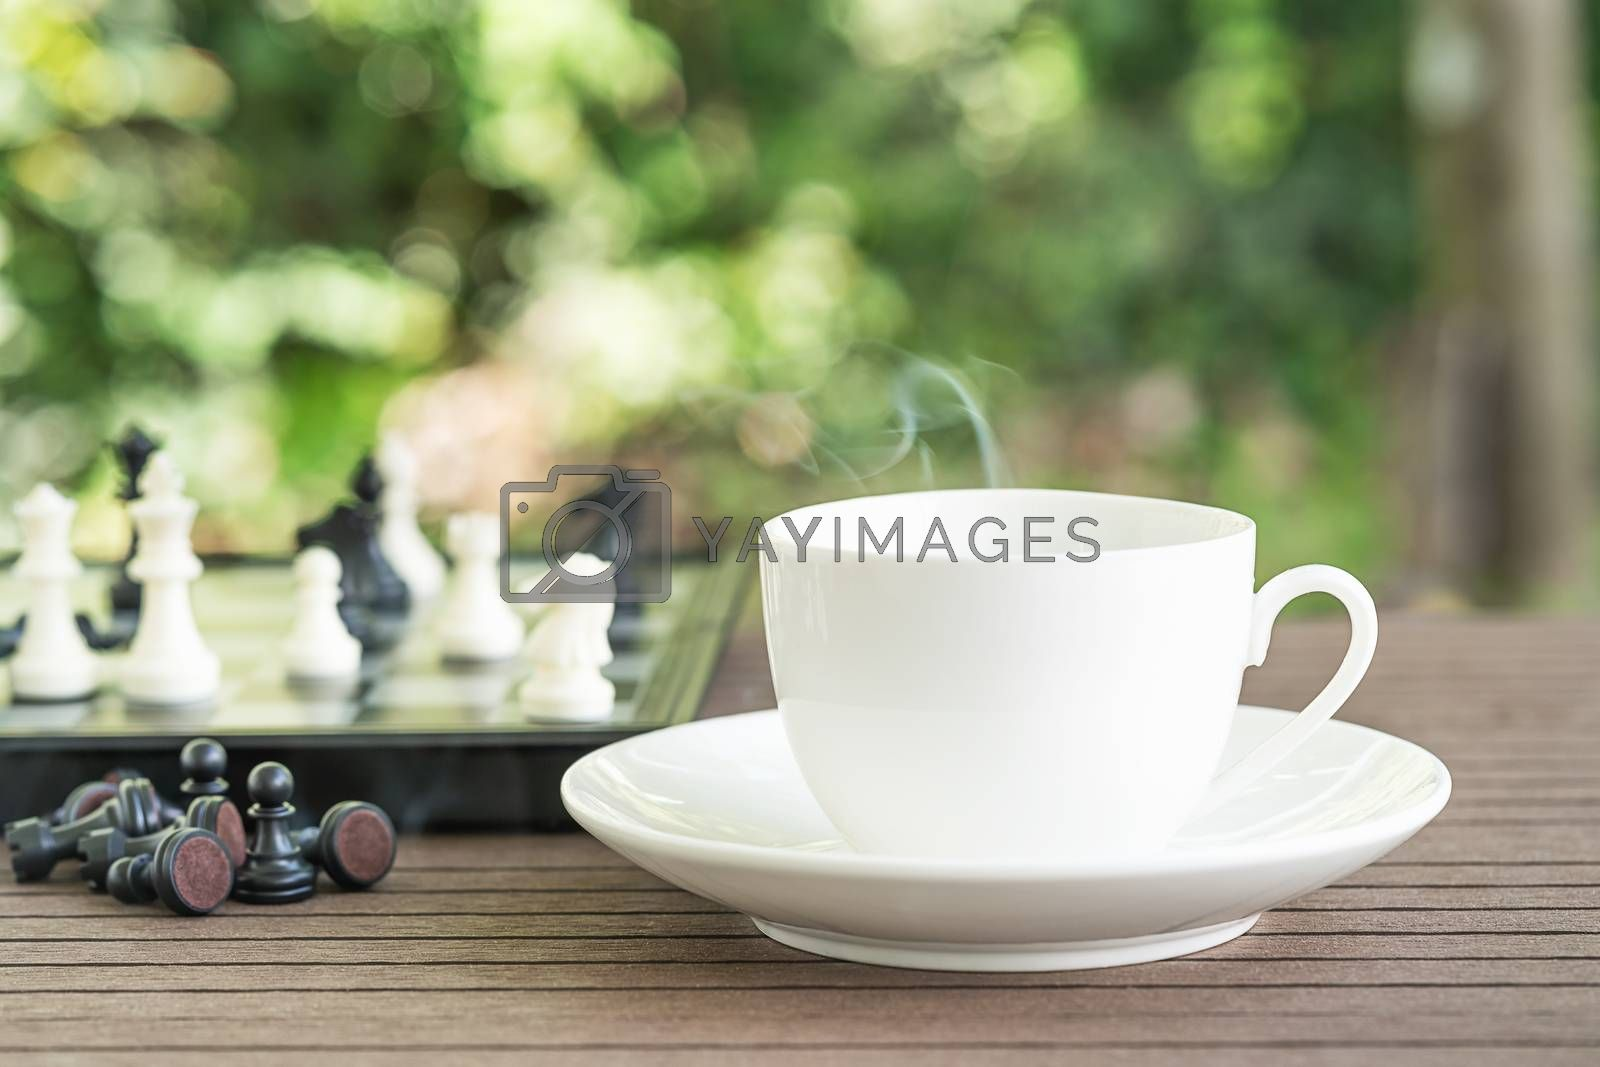 Cups of coffee on table with Chess board and pieces for relax time